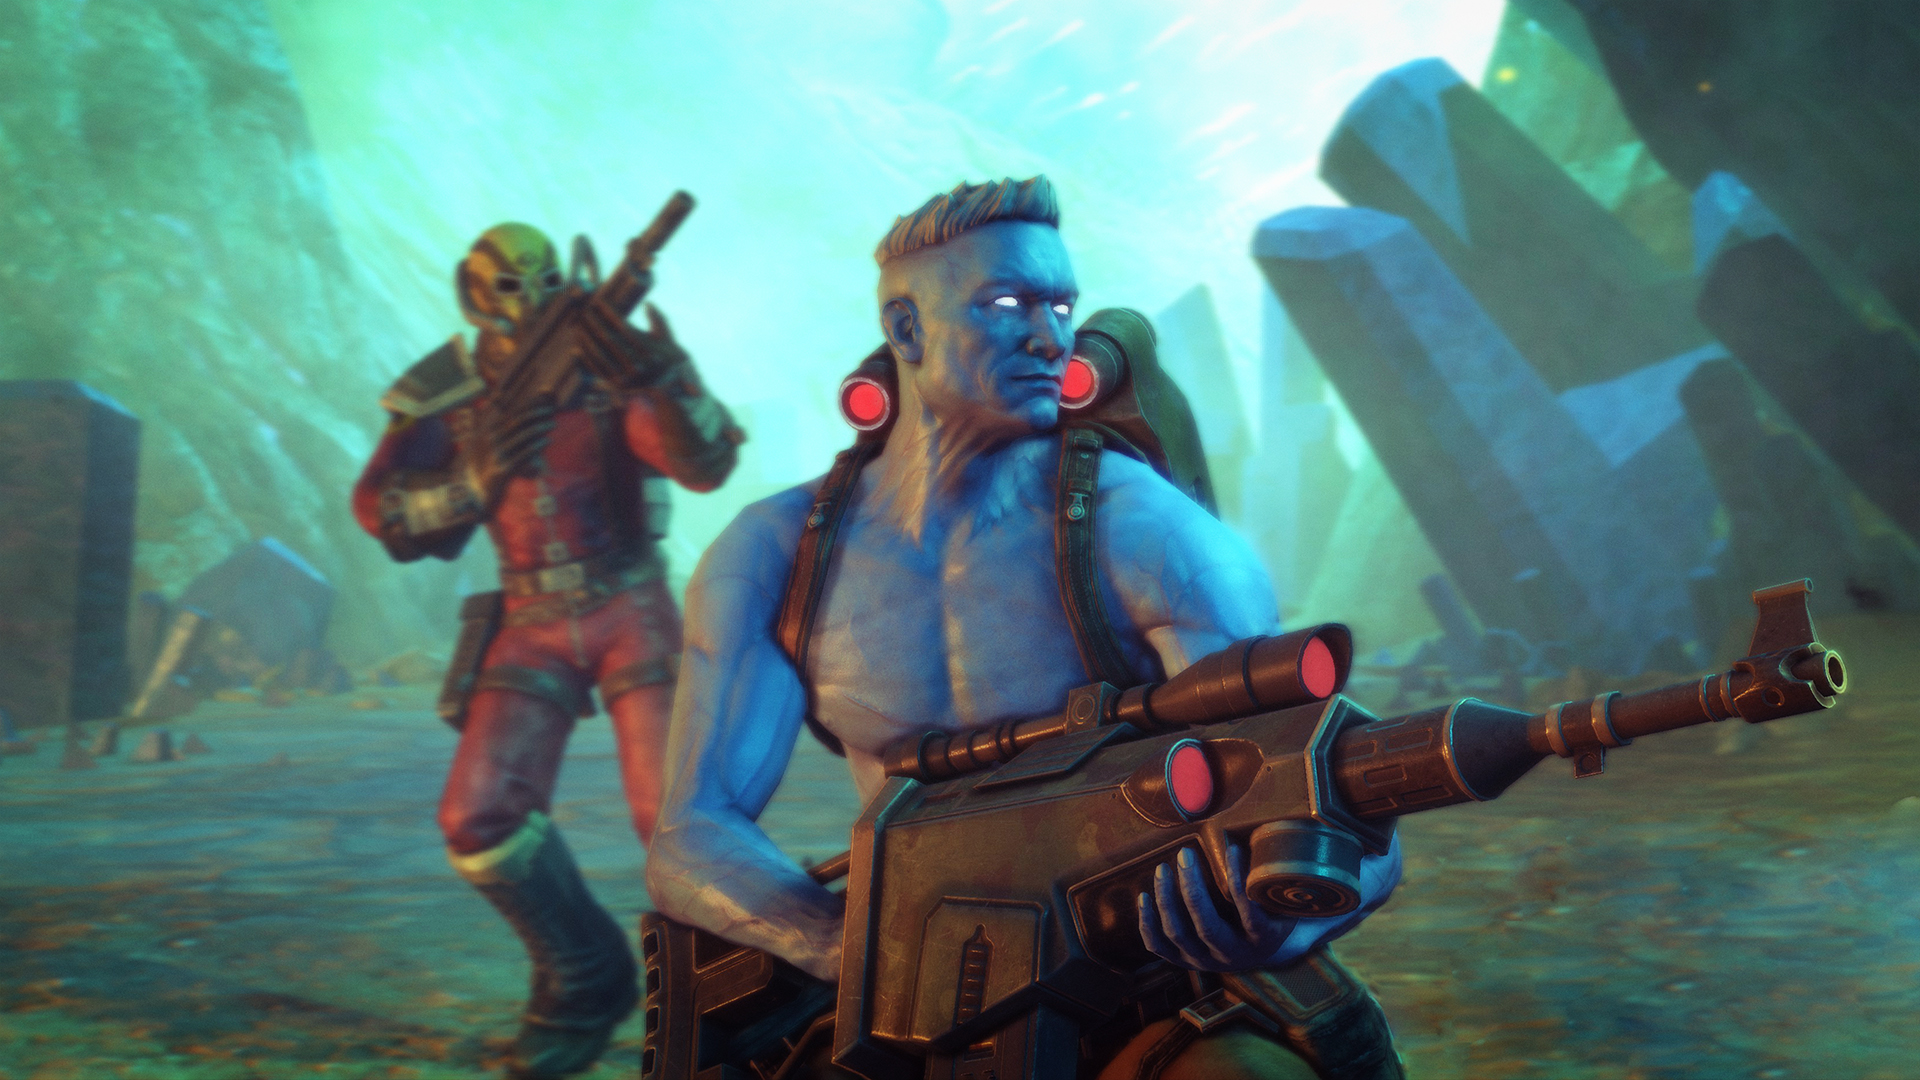 Rogue Trooper Redux is successfully resurrecting a cult hit shooter